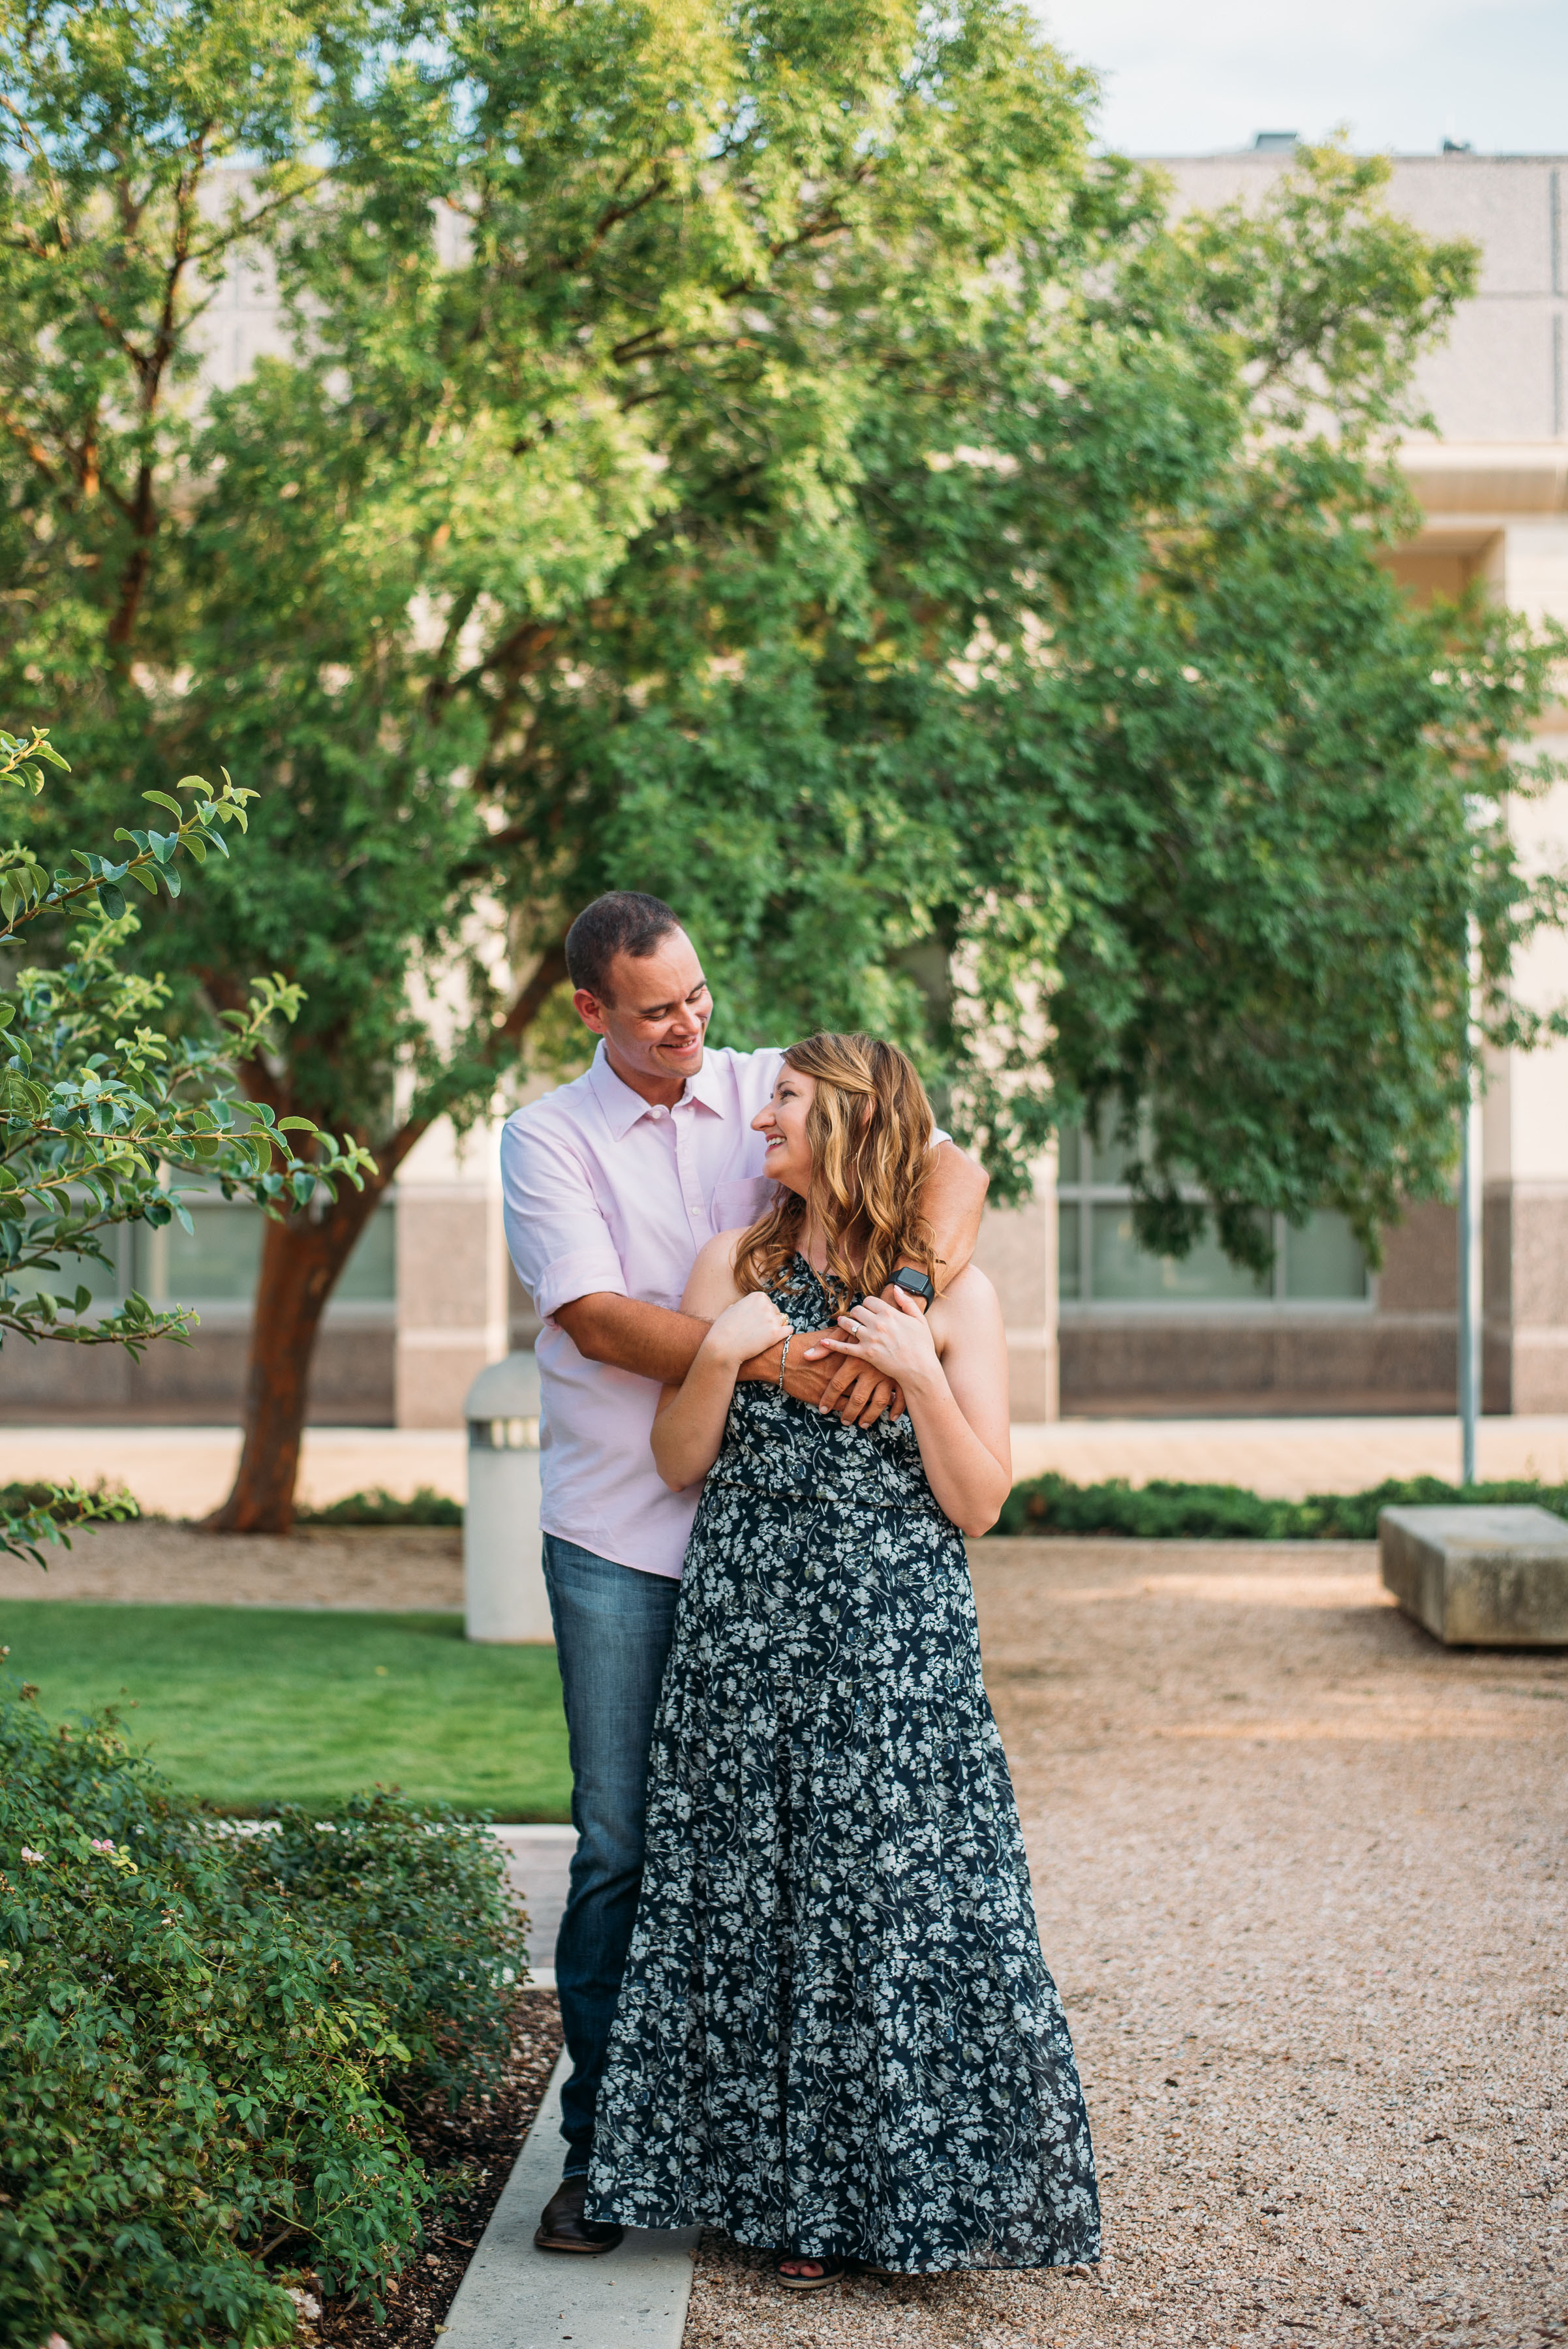 George-Bush-Library-Texas-A&M-University-Engagement-College-Station-Wedding-Photographer-Videographer-San-Angel-Photo-Mark-Mike-Erica-Century-Tree-04.jpg